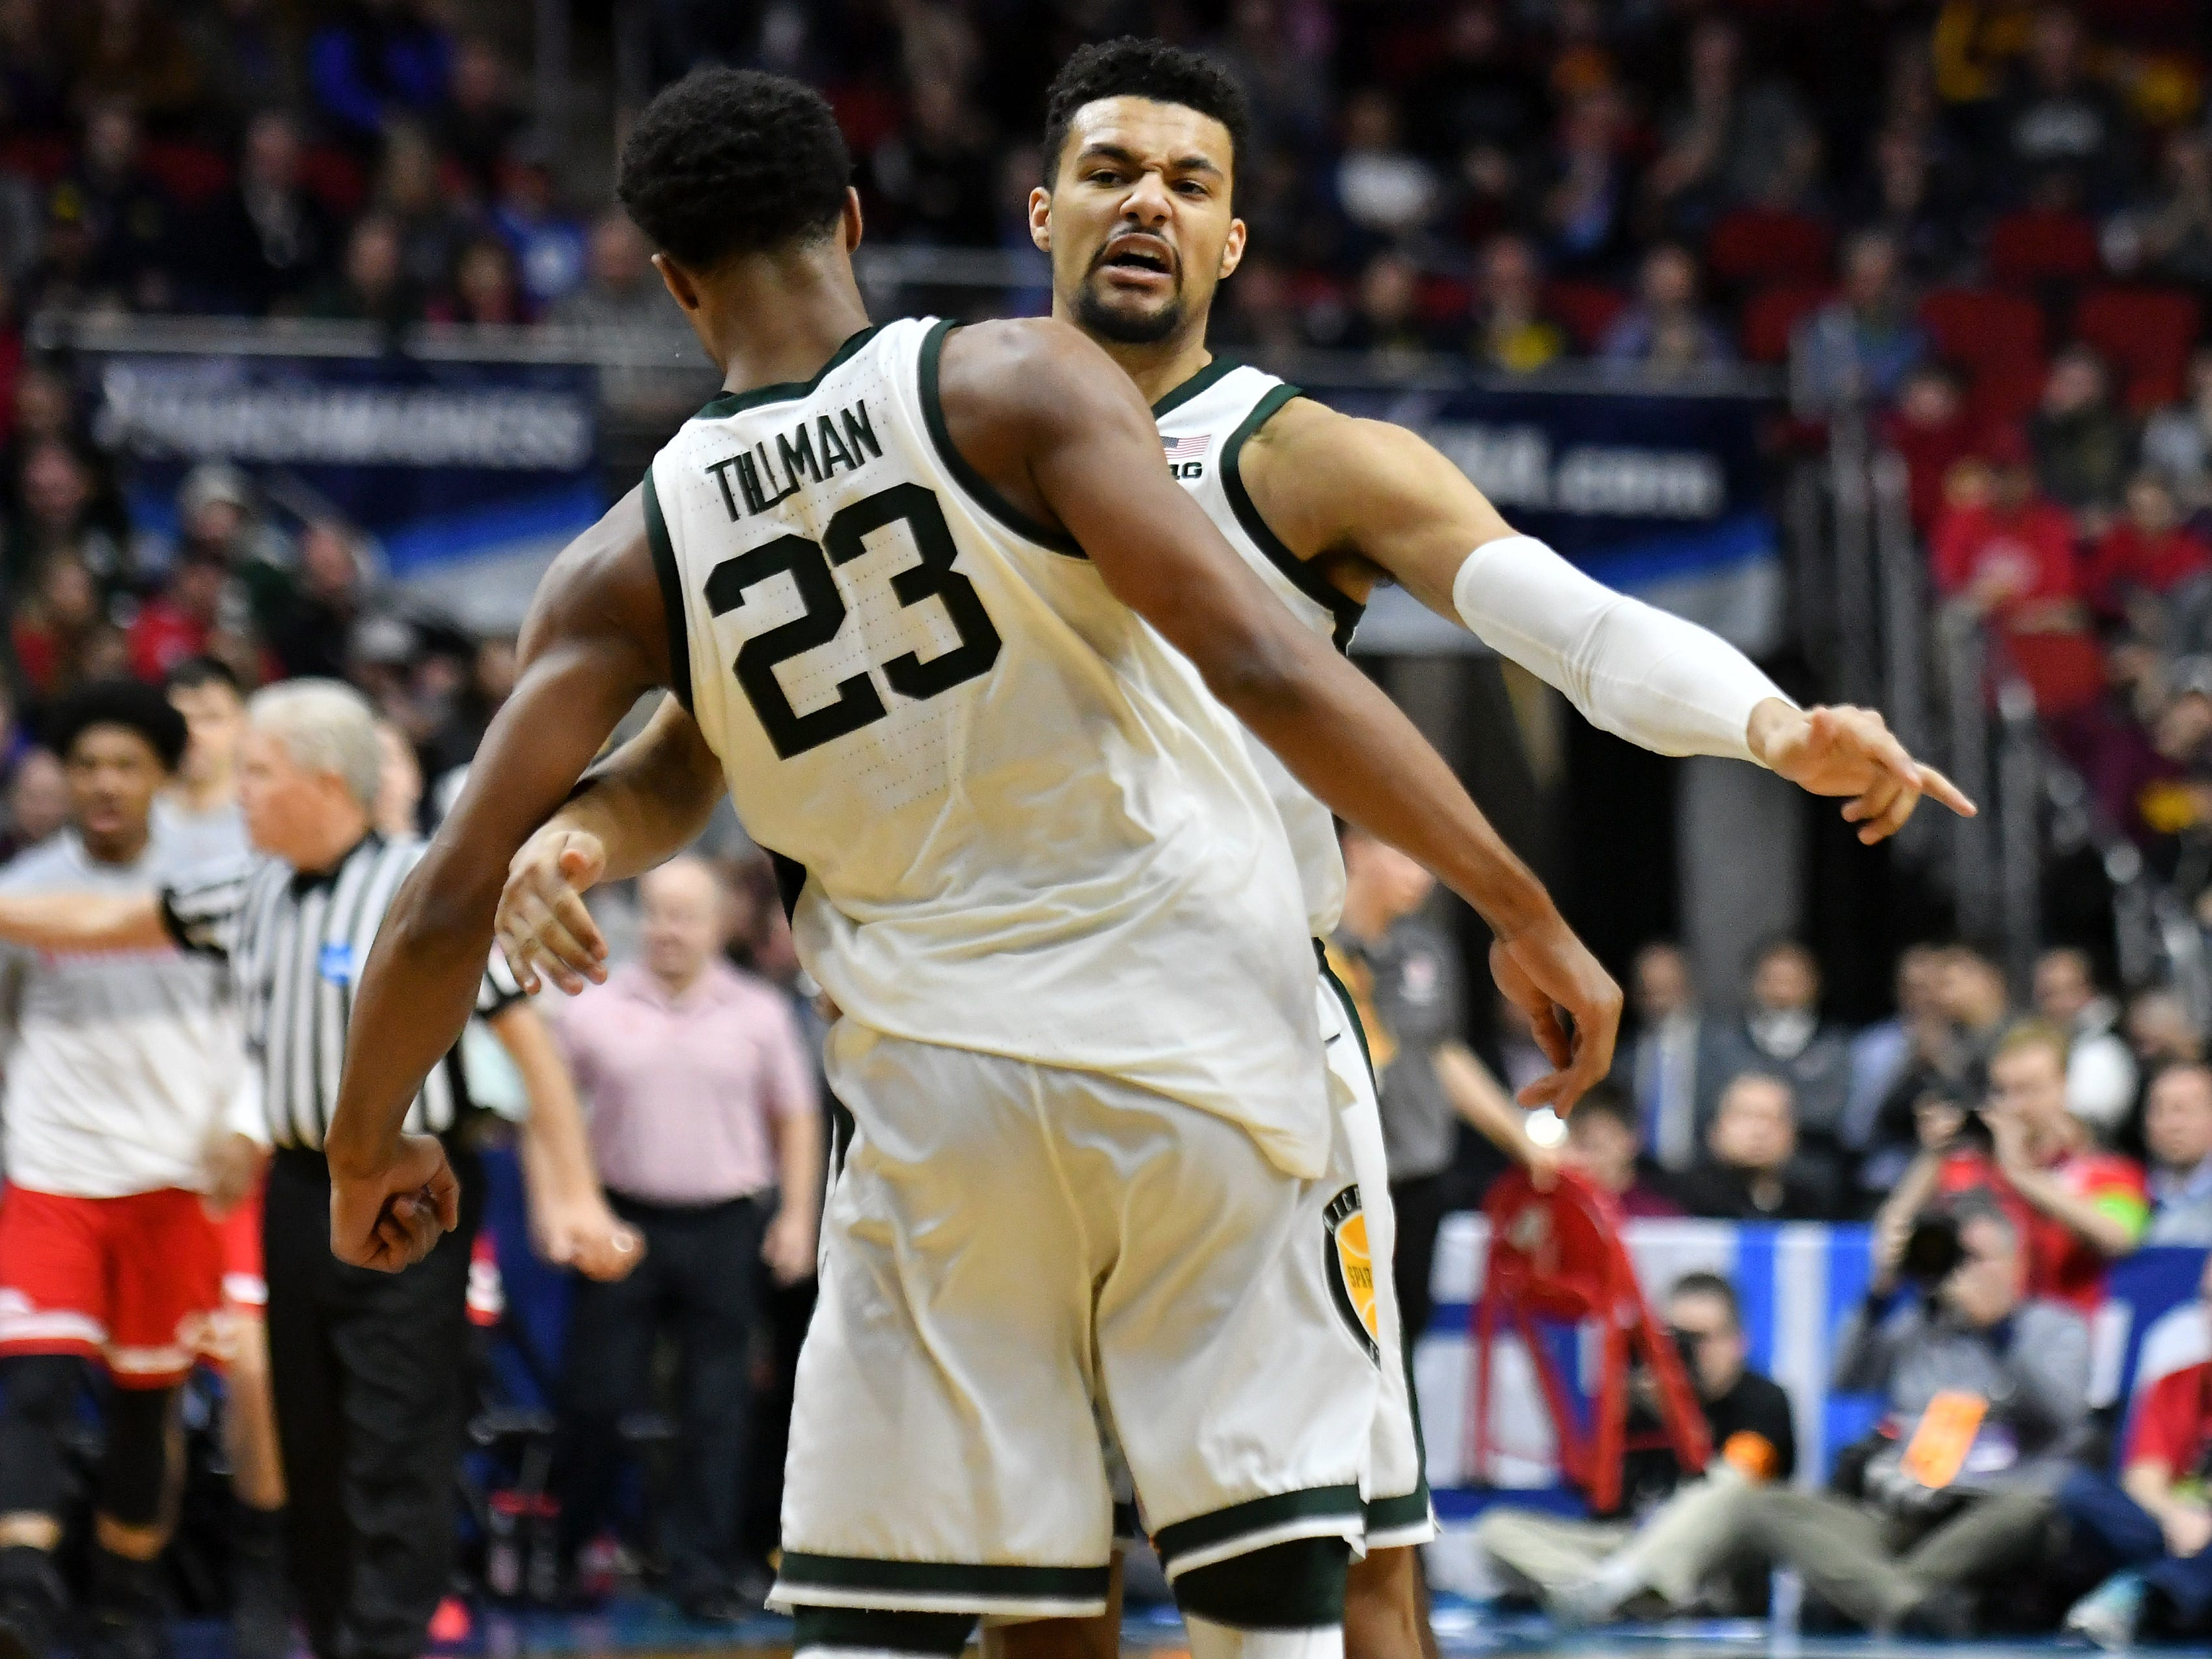 No panic: Bradley puts Michigan State on upset alert but Spartans survive